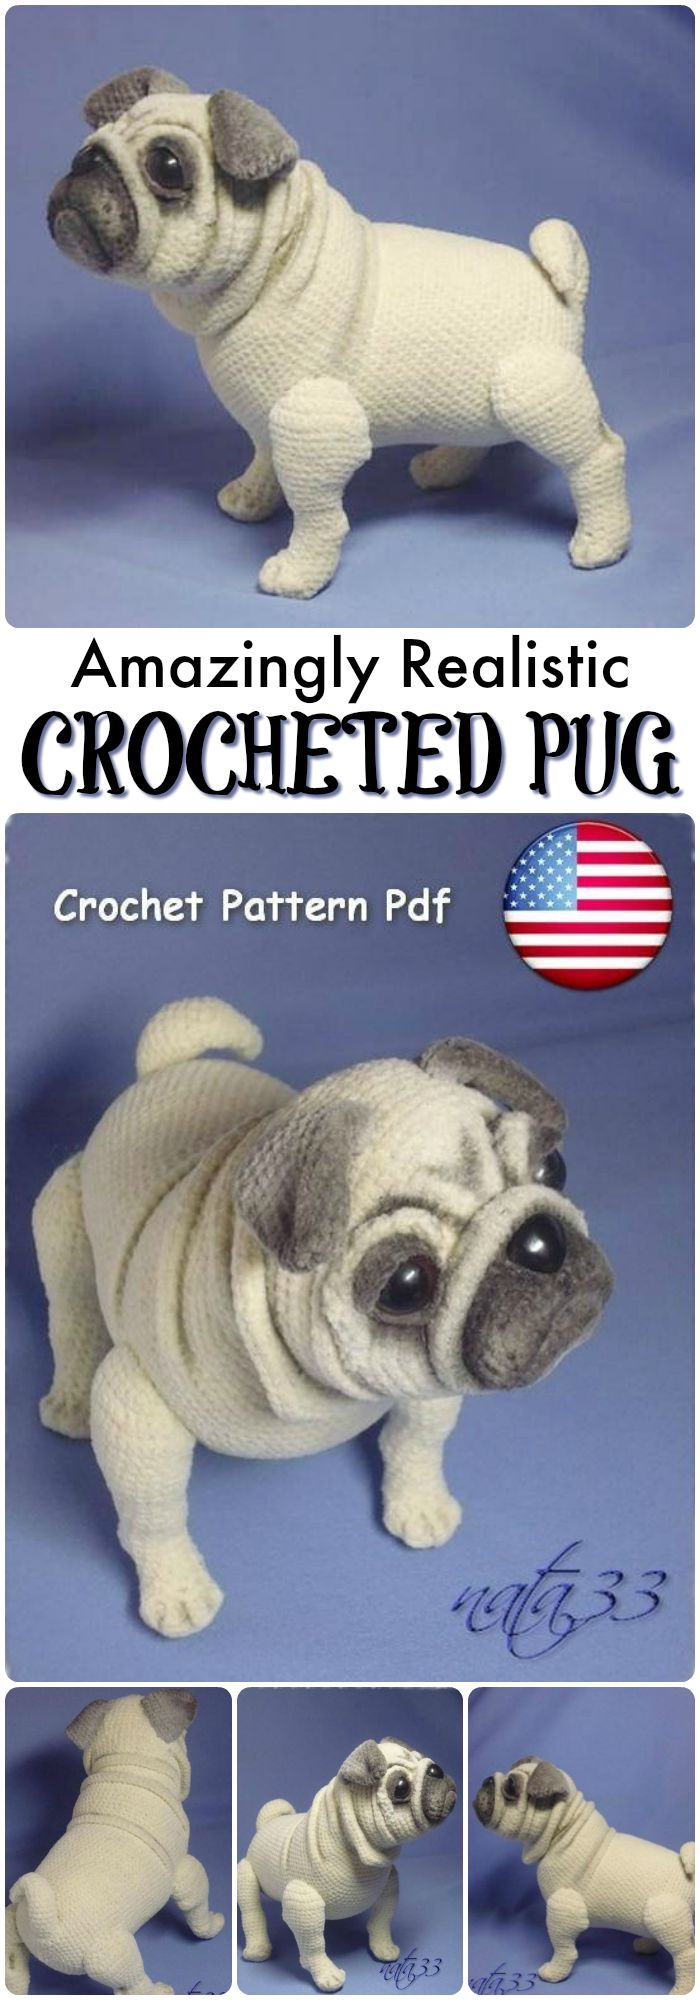 Wow! This pug dog is AMAZING! He looks just like a real dog! 15 pages of pattern and more than 20 pictures to help you make this stunning pug dog! Wow! This is so great. #etsy #ad